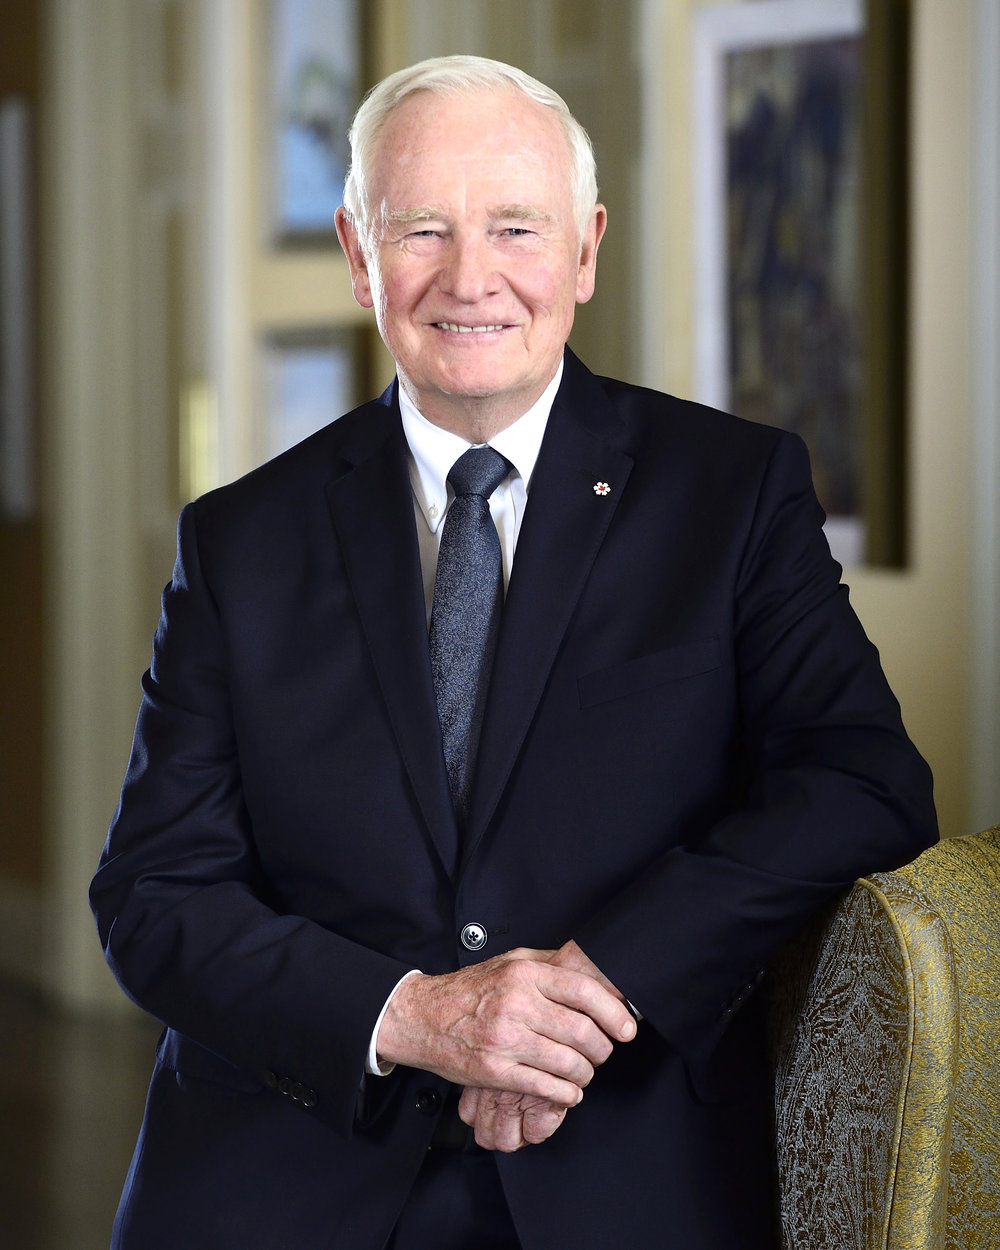 His Excellency the Right Honourable David Johnston, C.C., C.M.M., C.O.M., C.D., Governor General and Commander-in-Chief of Canada Photo by: Sgt Ronald Duchesne, Rideau Hall © Her Majesty The Queen in Right of Canada represented by the Office of the Secretary to the Governor General, 2015